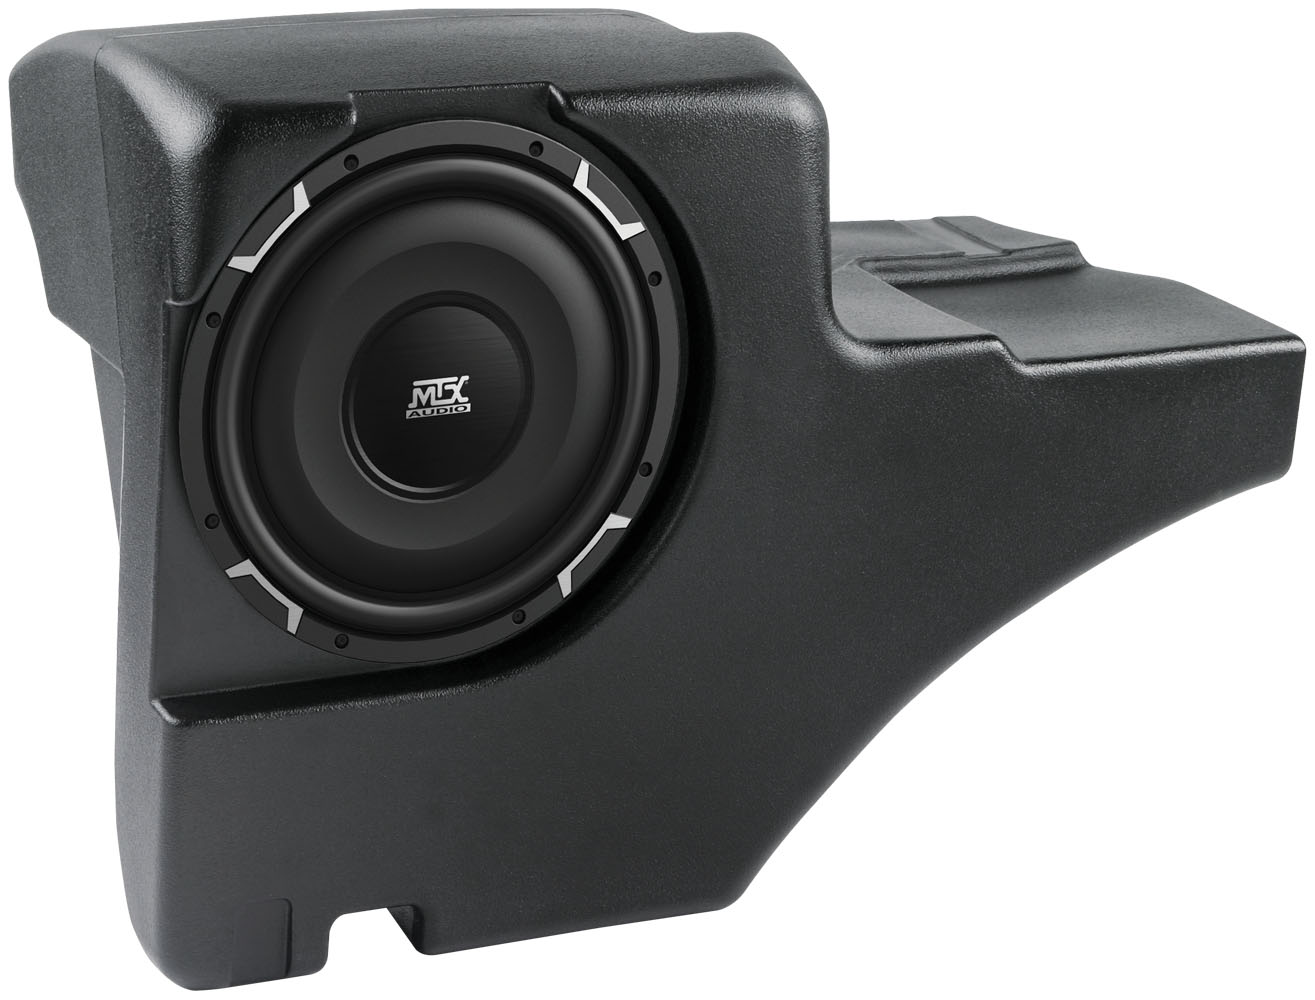 Chevrolet Tahoe 2001 2006 Thunderform Custom Subwoofer Enclosure Mtx Audio Serious About Sound